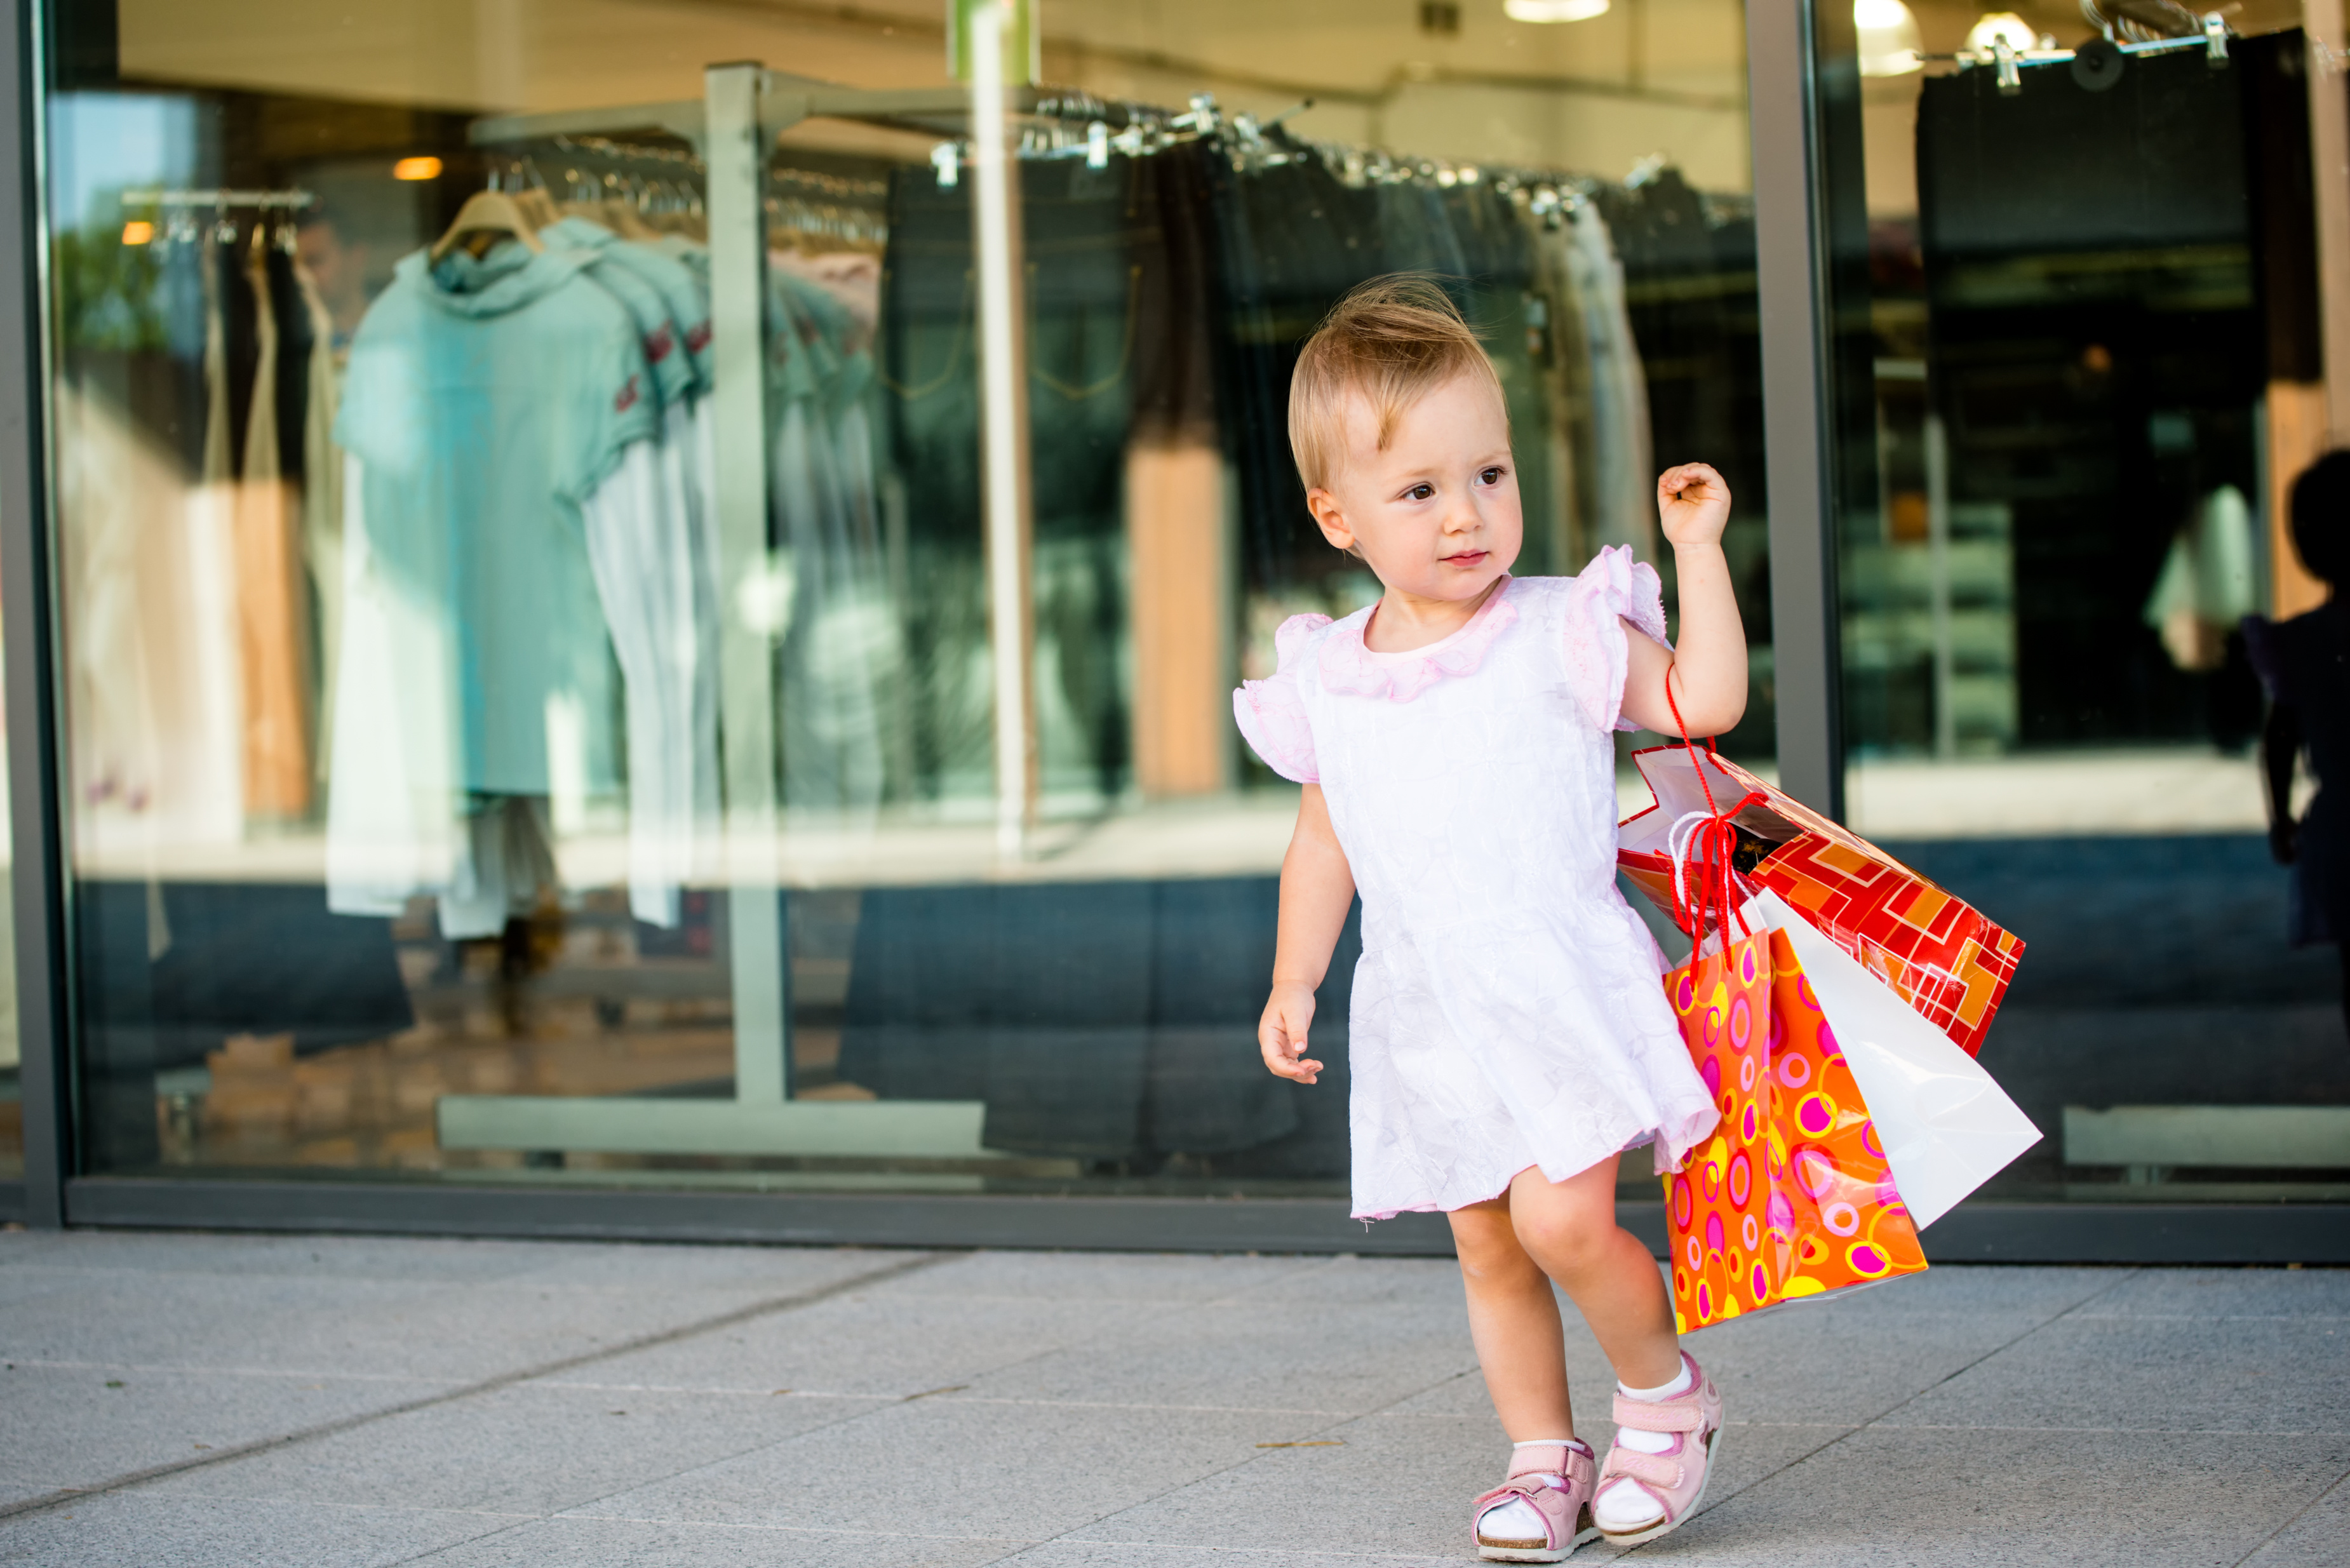 How to Turn Consumers into Shoppers